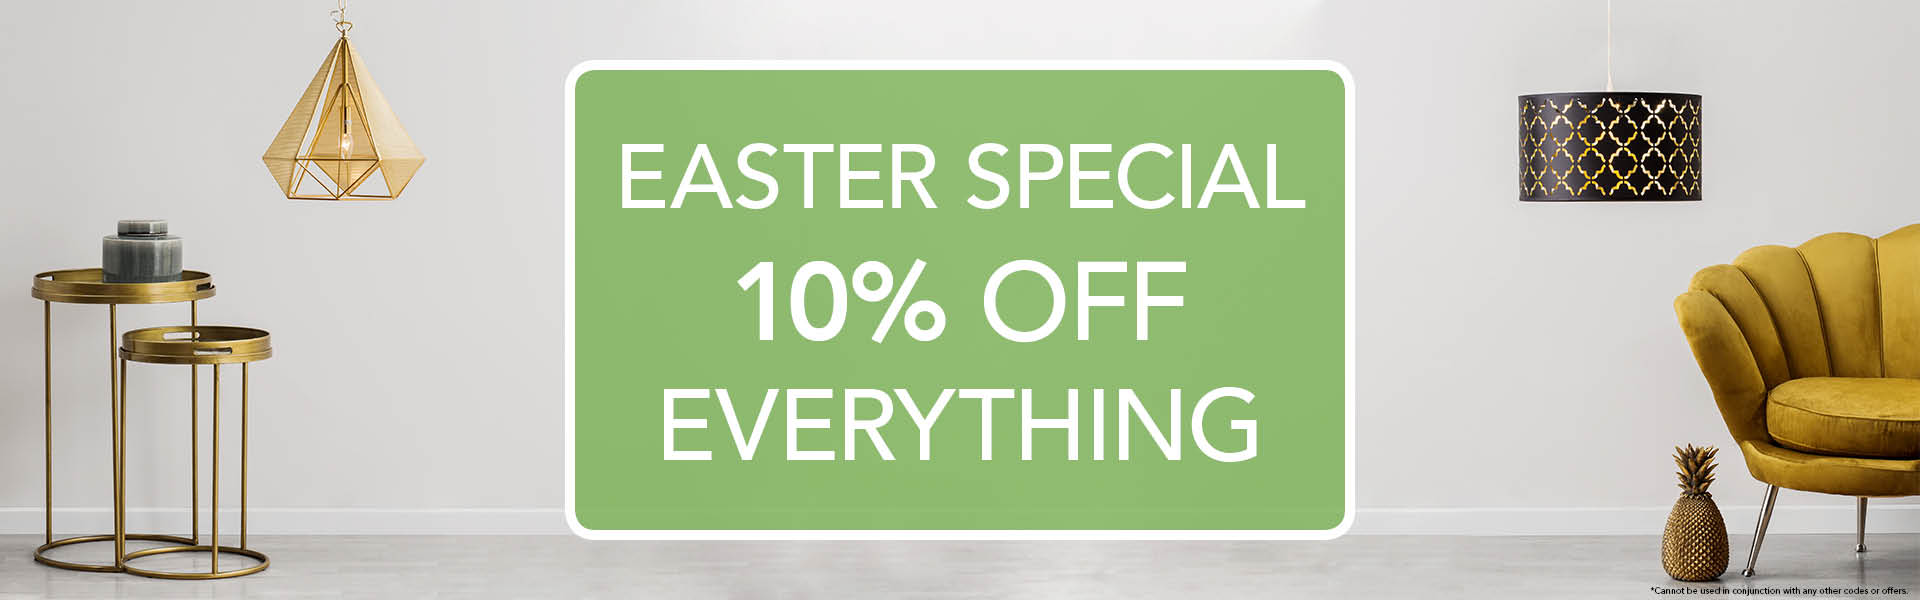 Easter Special 10% off Everything